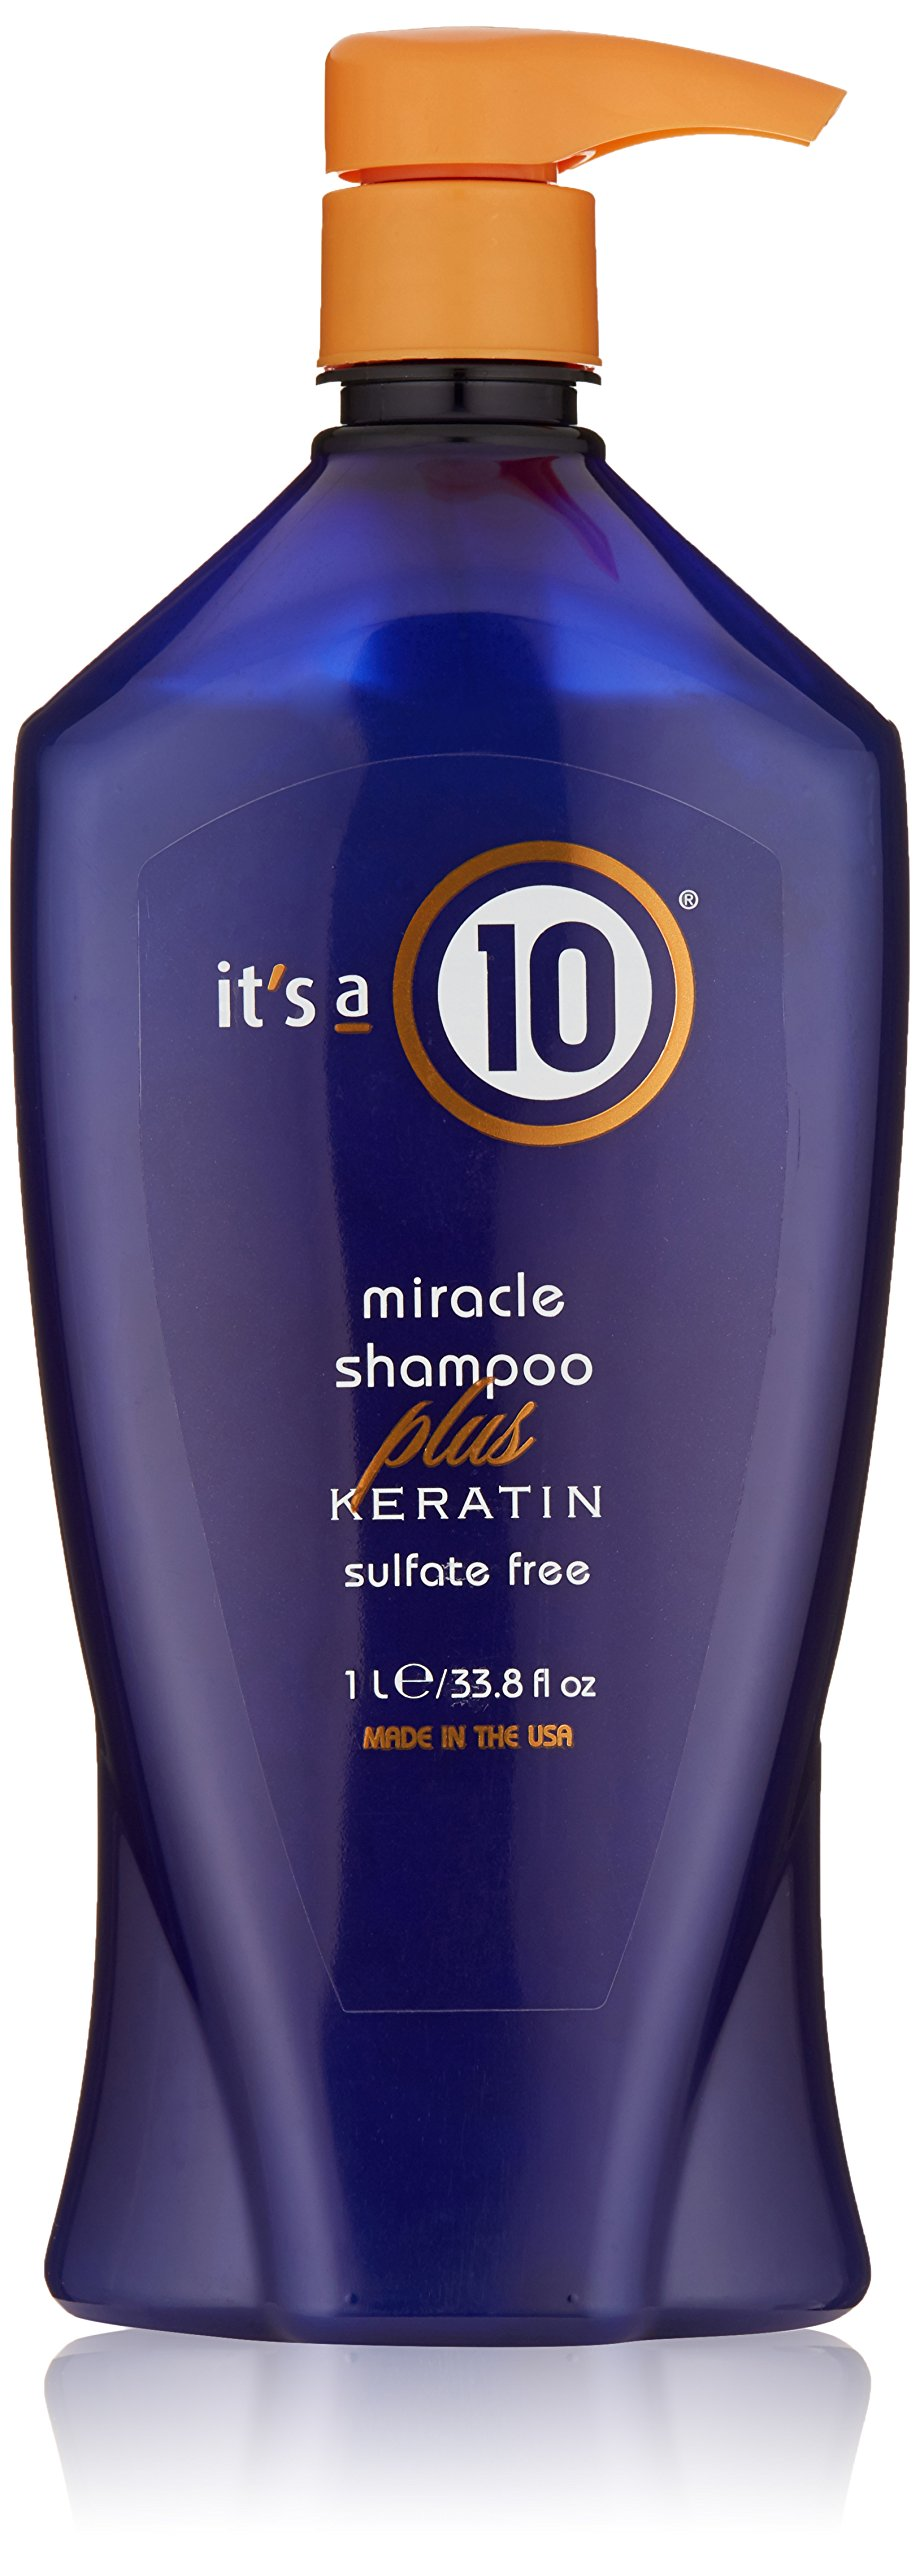 It's a 10 Haircare Miracle Shampoo Plus Keratin Sulfate Free, 33.80 fl. oz.